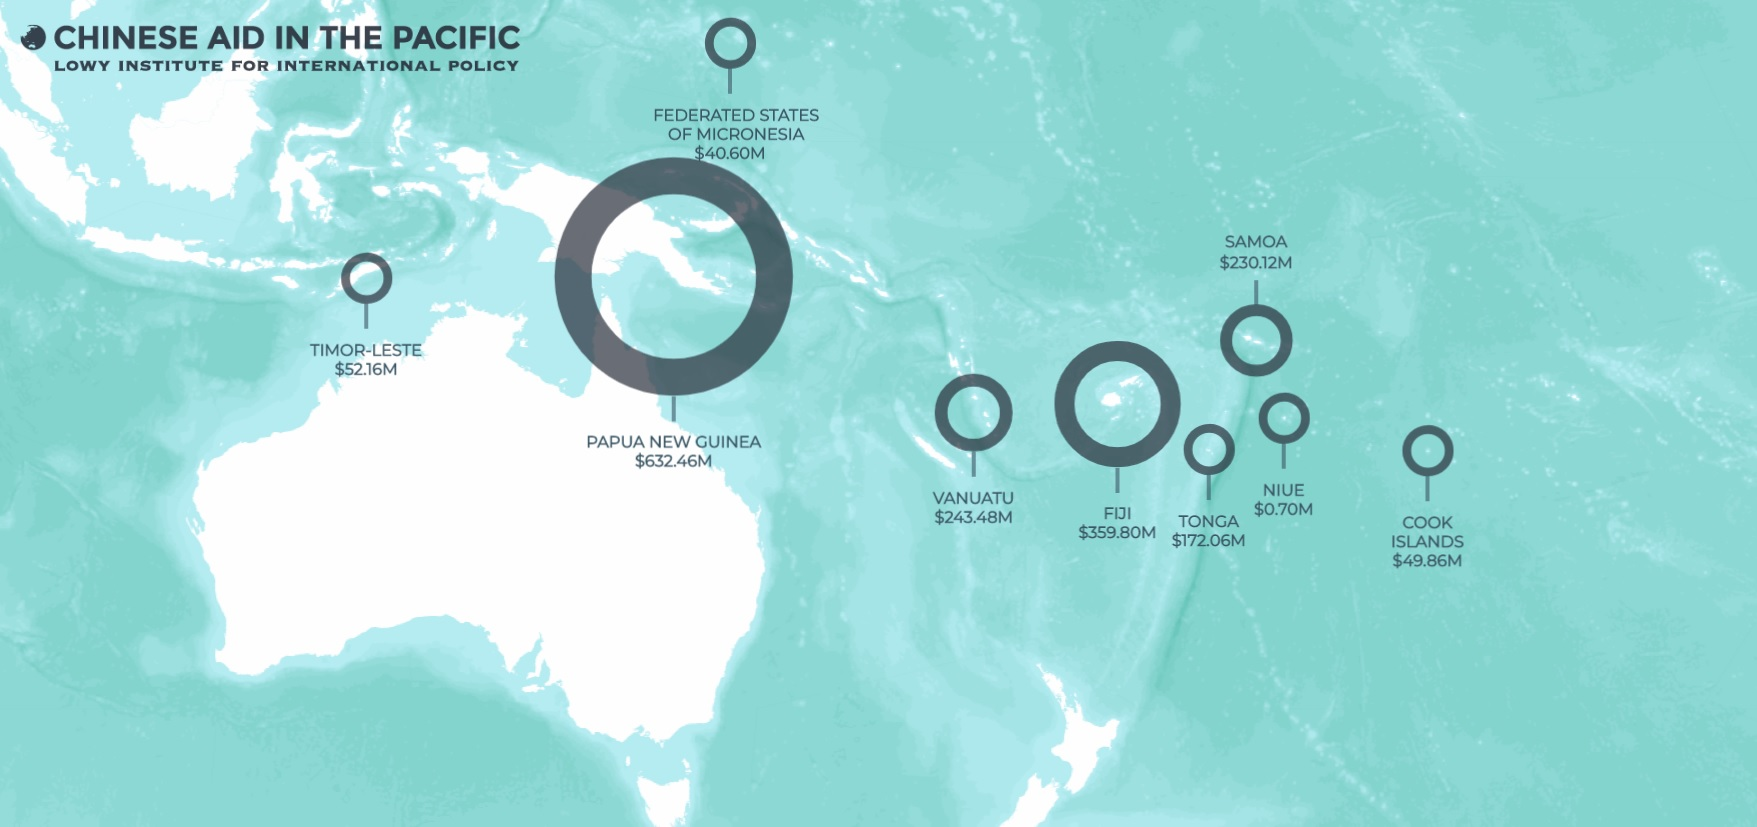 Chinese Pacific aid map by Lowy Institute